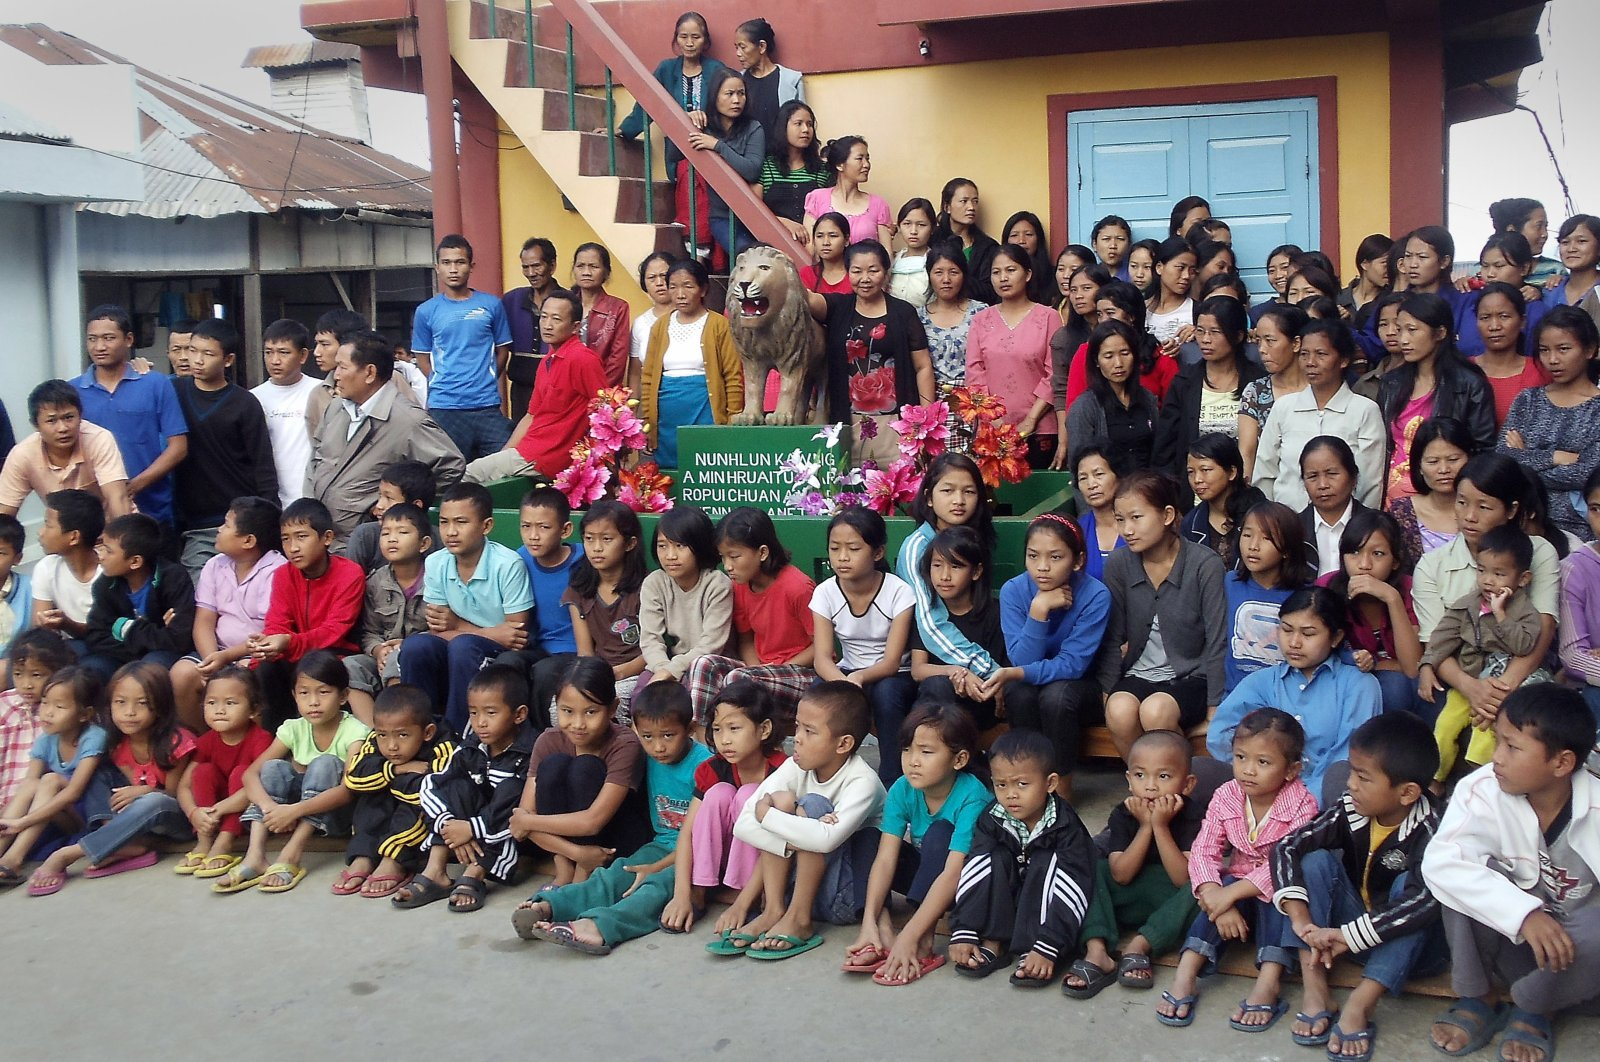 Members of the Chana family pose for a photograph at their home in the village of Baktawng in the Serchhip district, located about 70 kilometers (44 miles) from Mizoram state's capital city Aizawl, northeast India, Oct. 28, 2011. (EFA-EPA Photo)